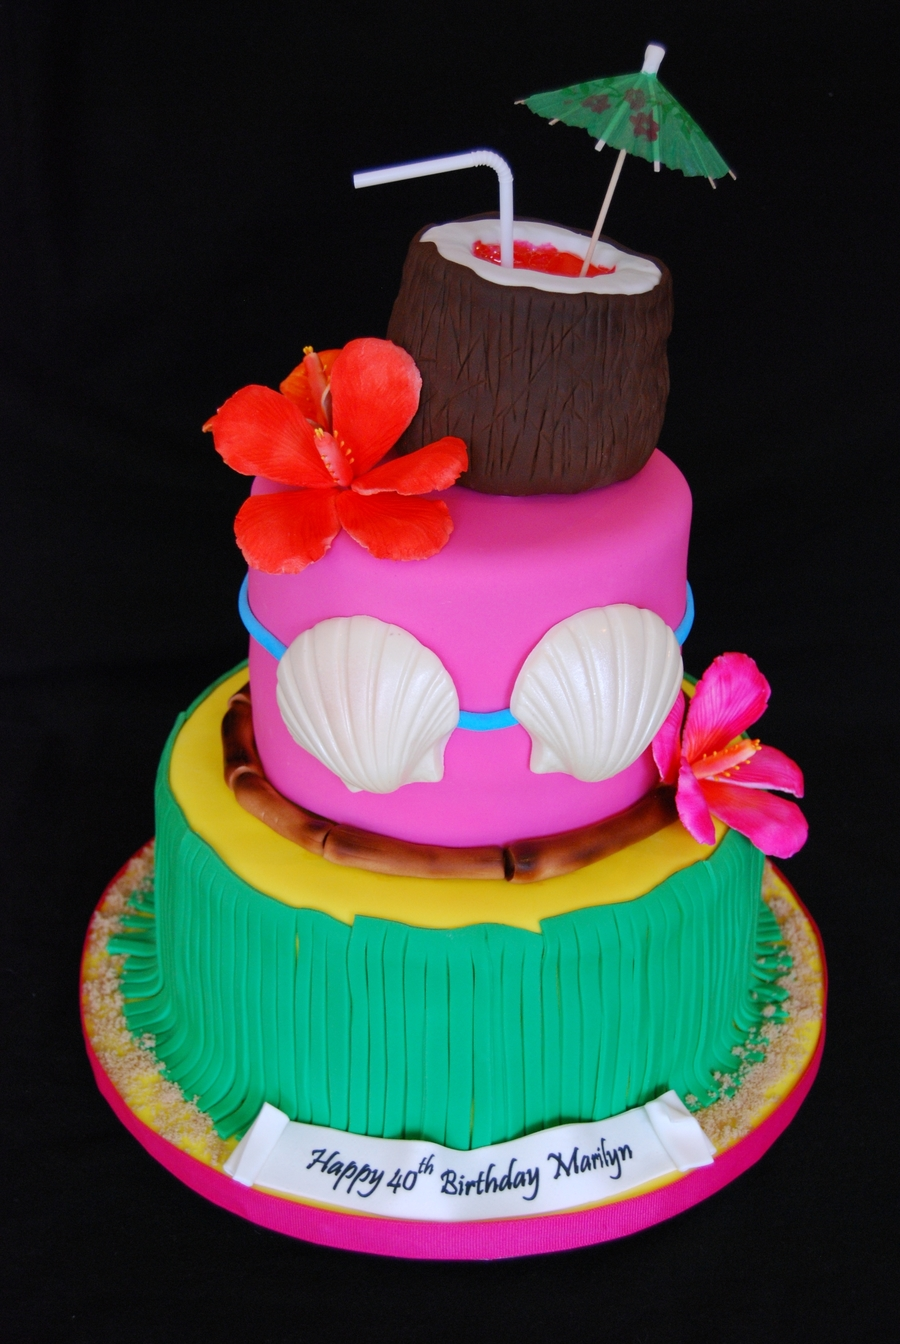 Hawaiian Themed 40th Birthday Cake On Central